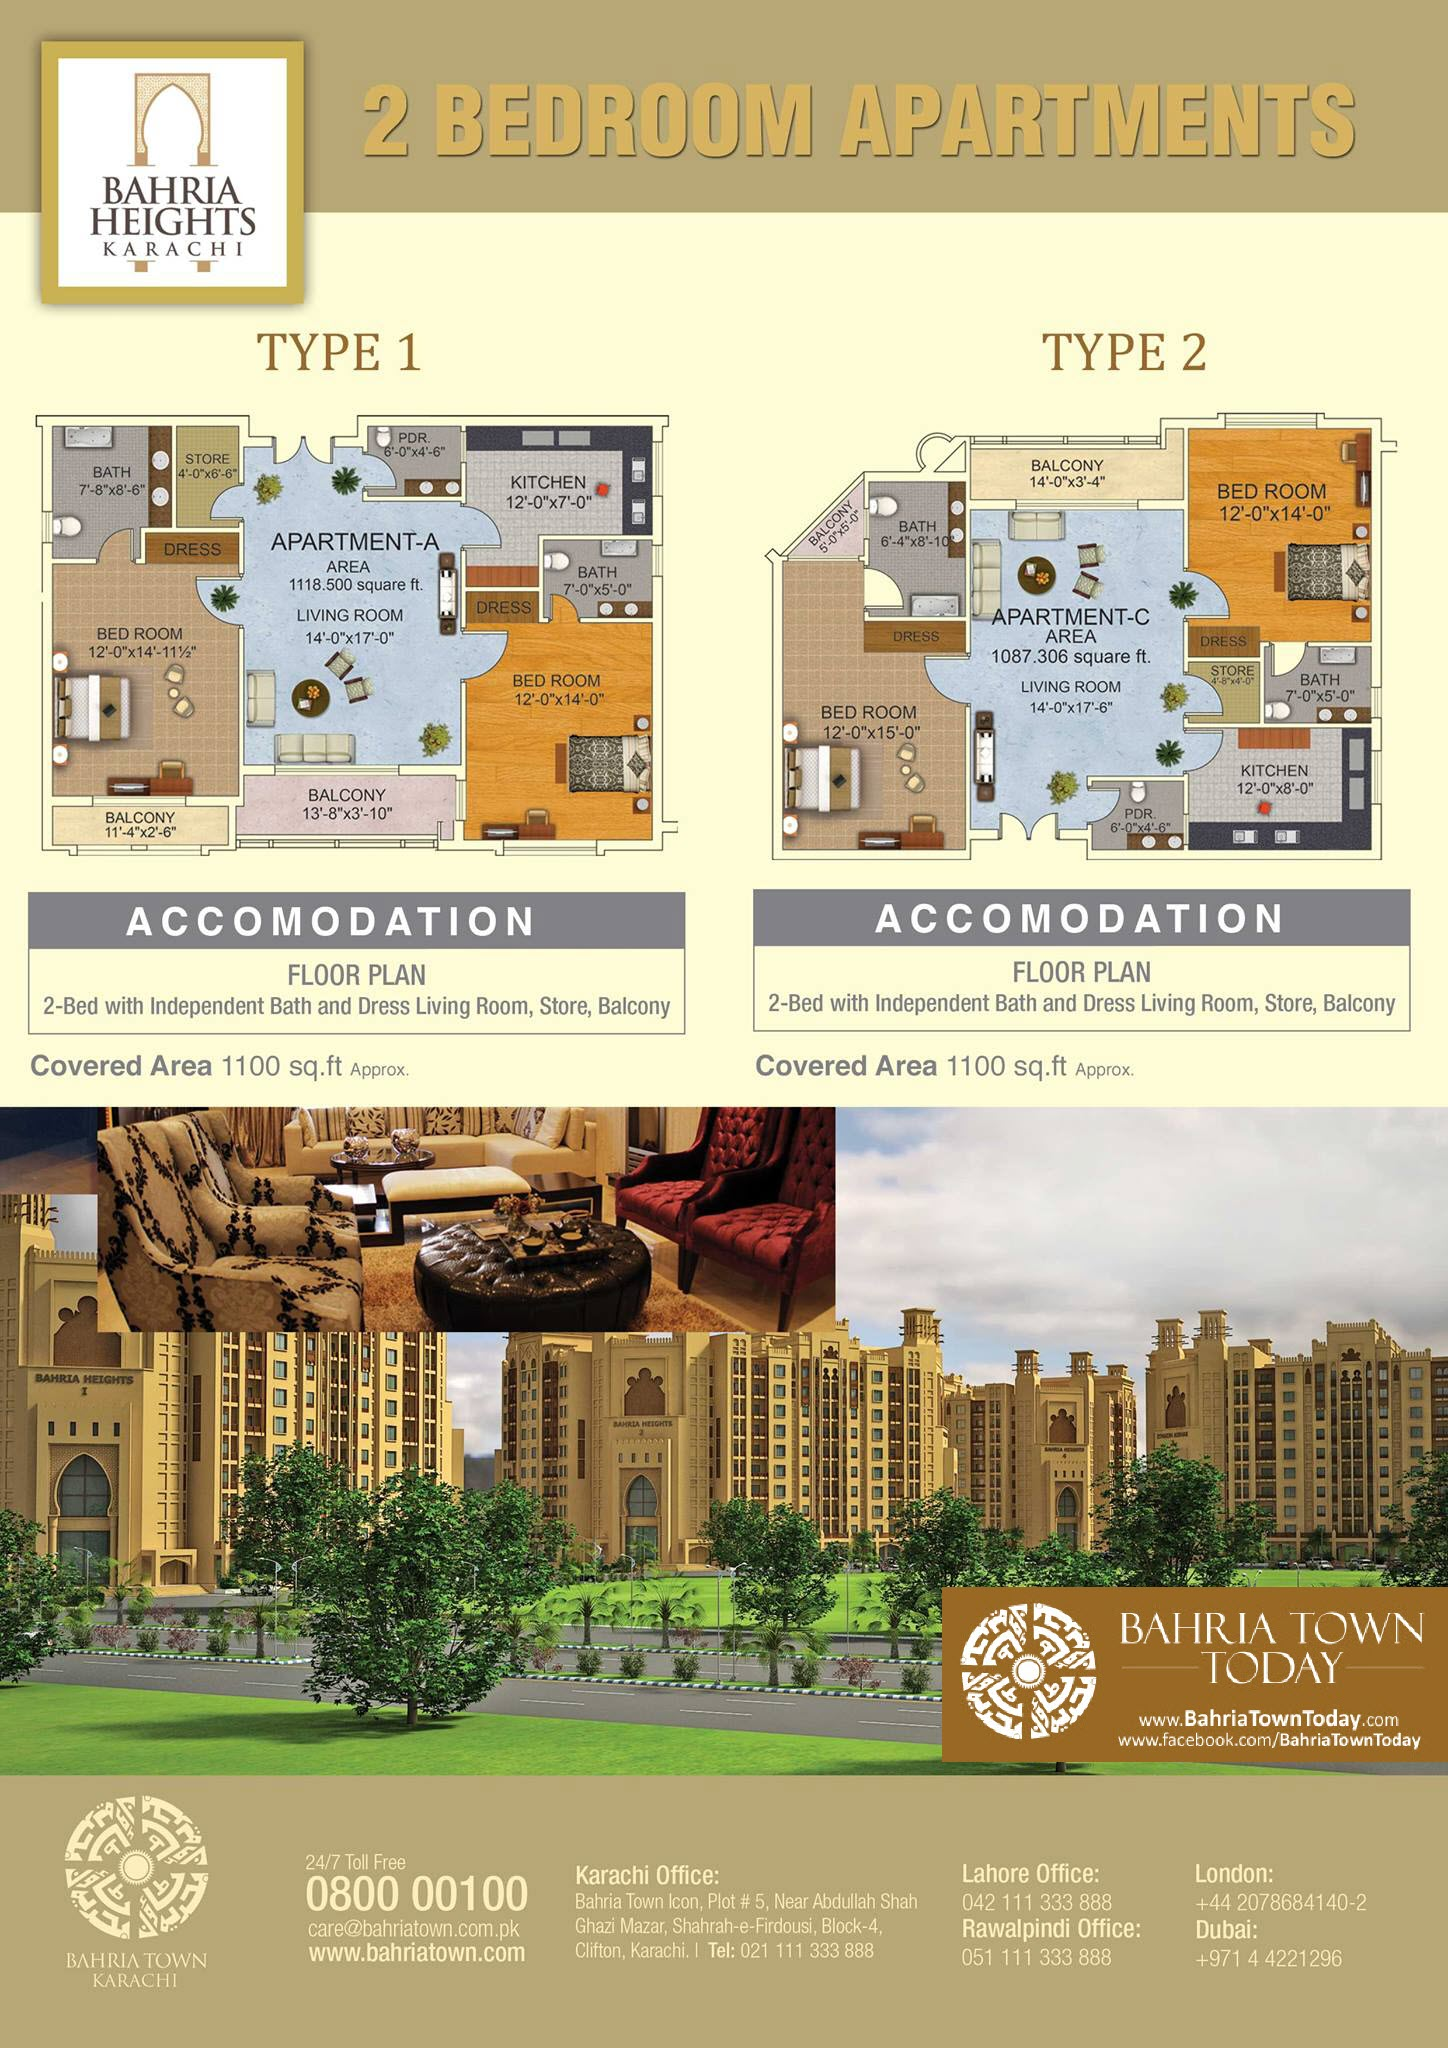 Floor Plan Of 2 Bedroom Apartments Bahria Heights In Town Karachi